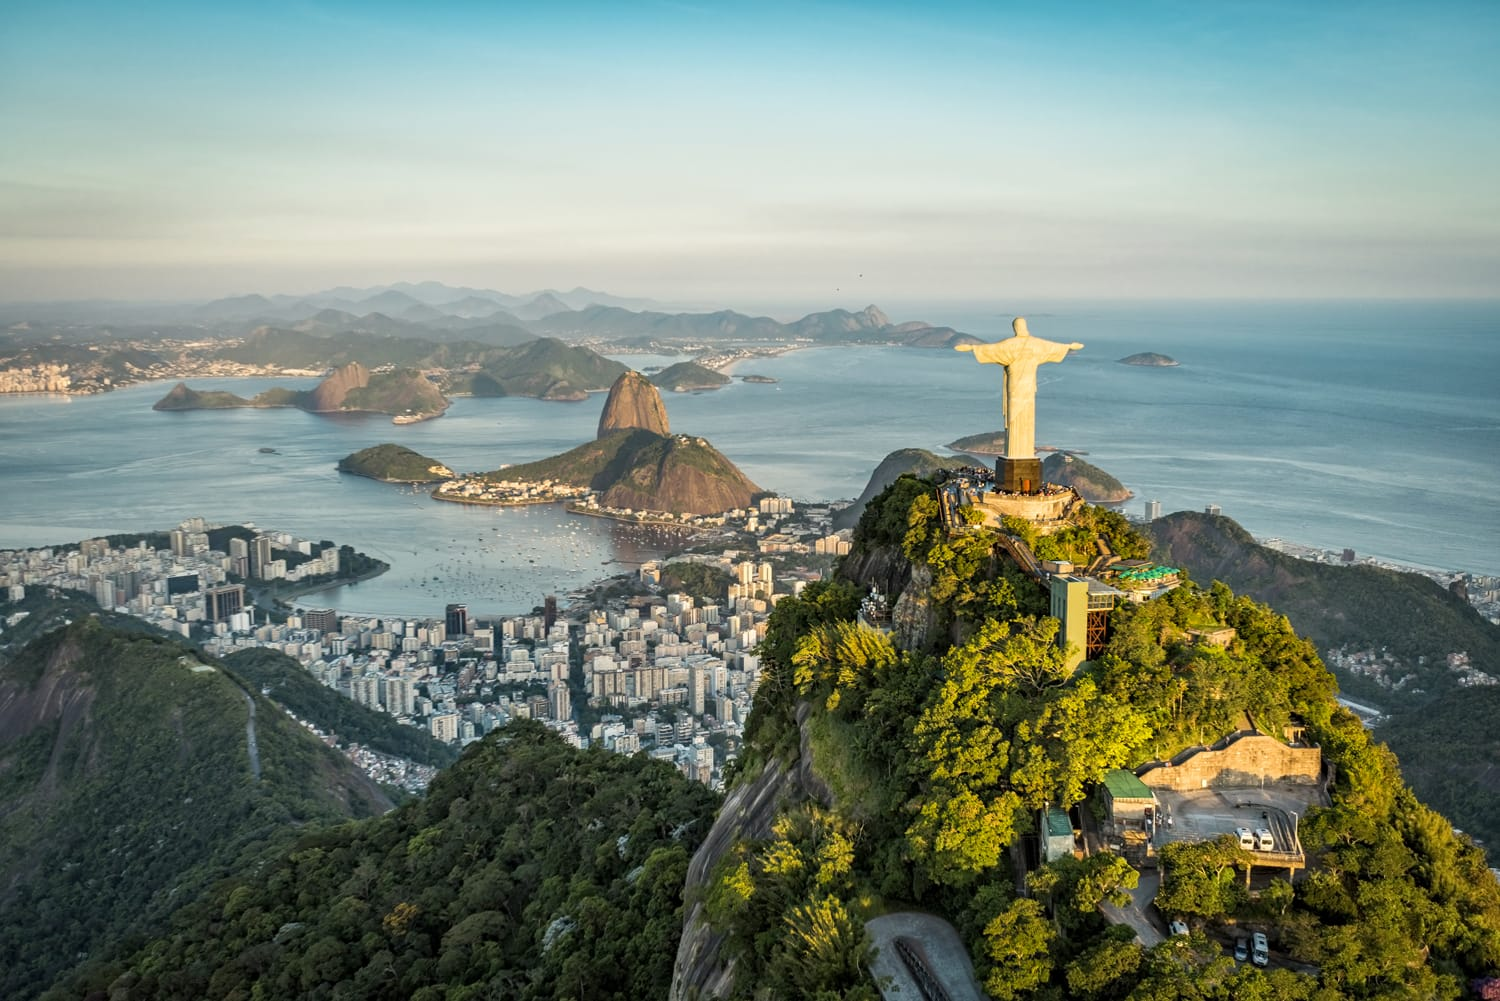 Aerial view of Christ The Reedemer Statue and Sugar Loaf Mountain from high angle. Rio de Janeiro in Brazil.